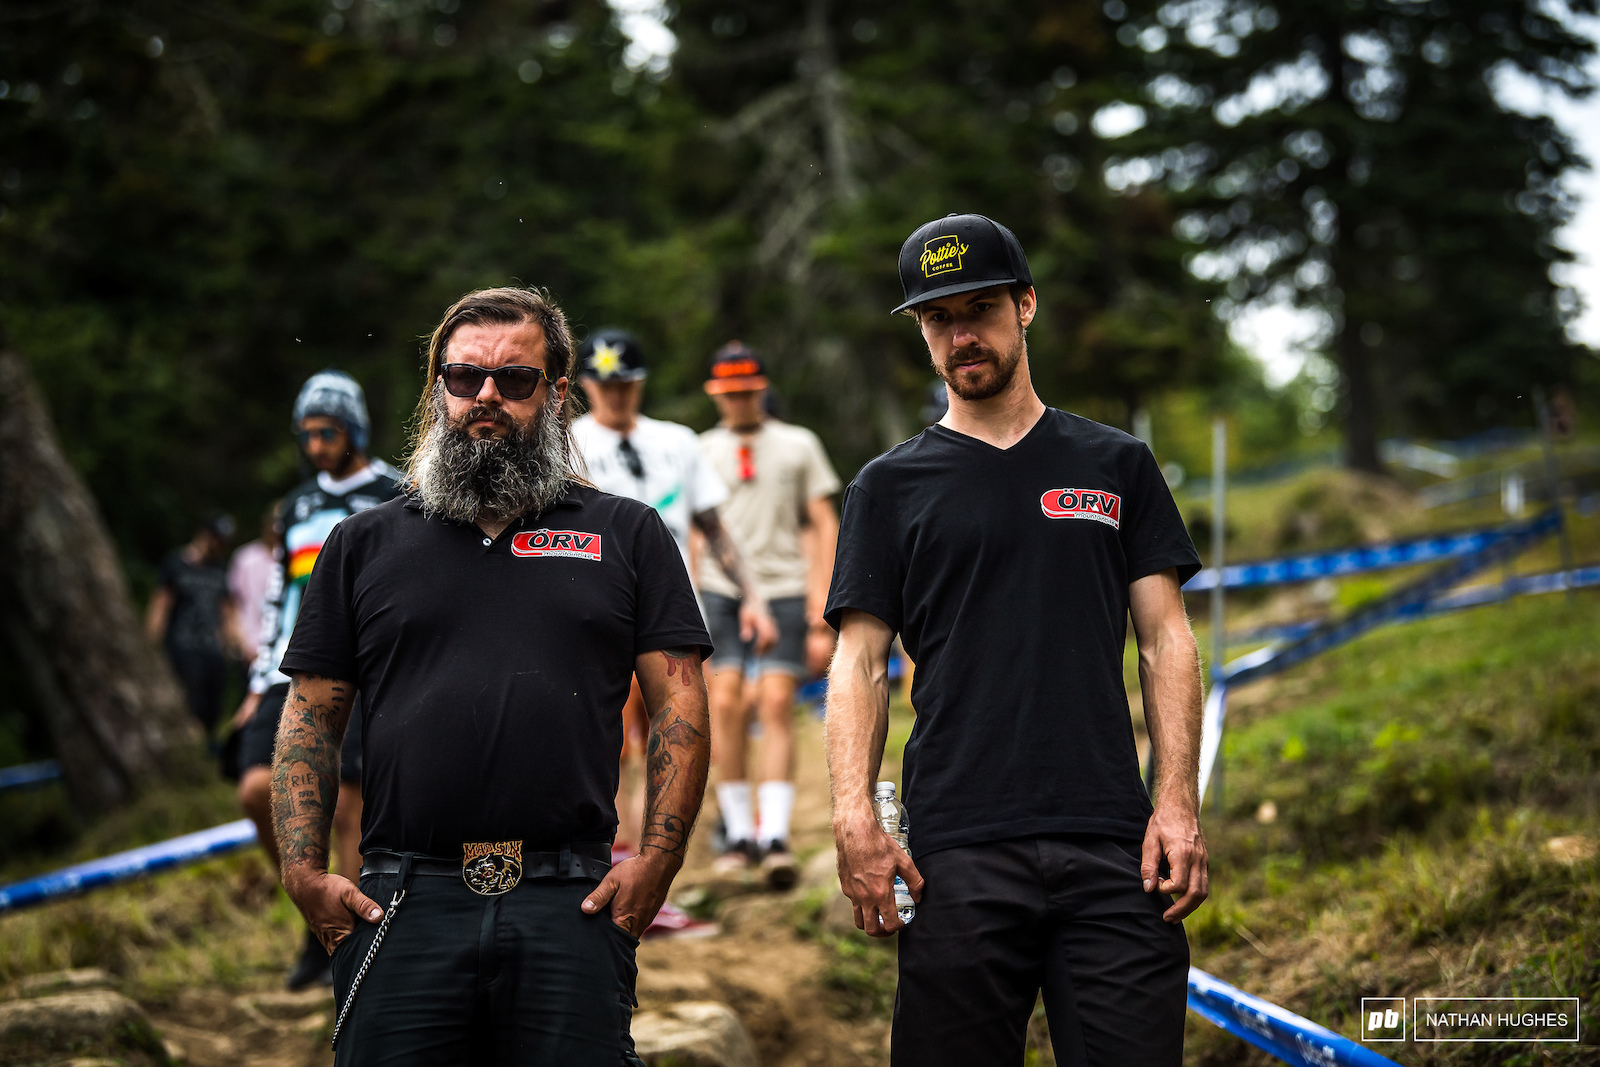 David Trummer and mechanic Jensen walking the upper slopes. David apparently can t explain his consistently incredible results this year... he s just riding normally . Go figure.